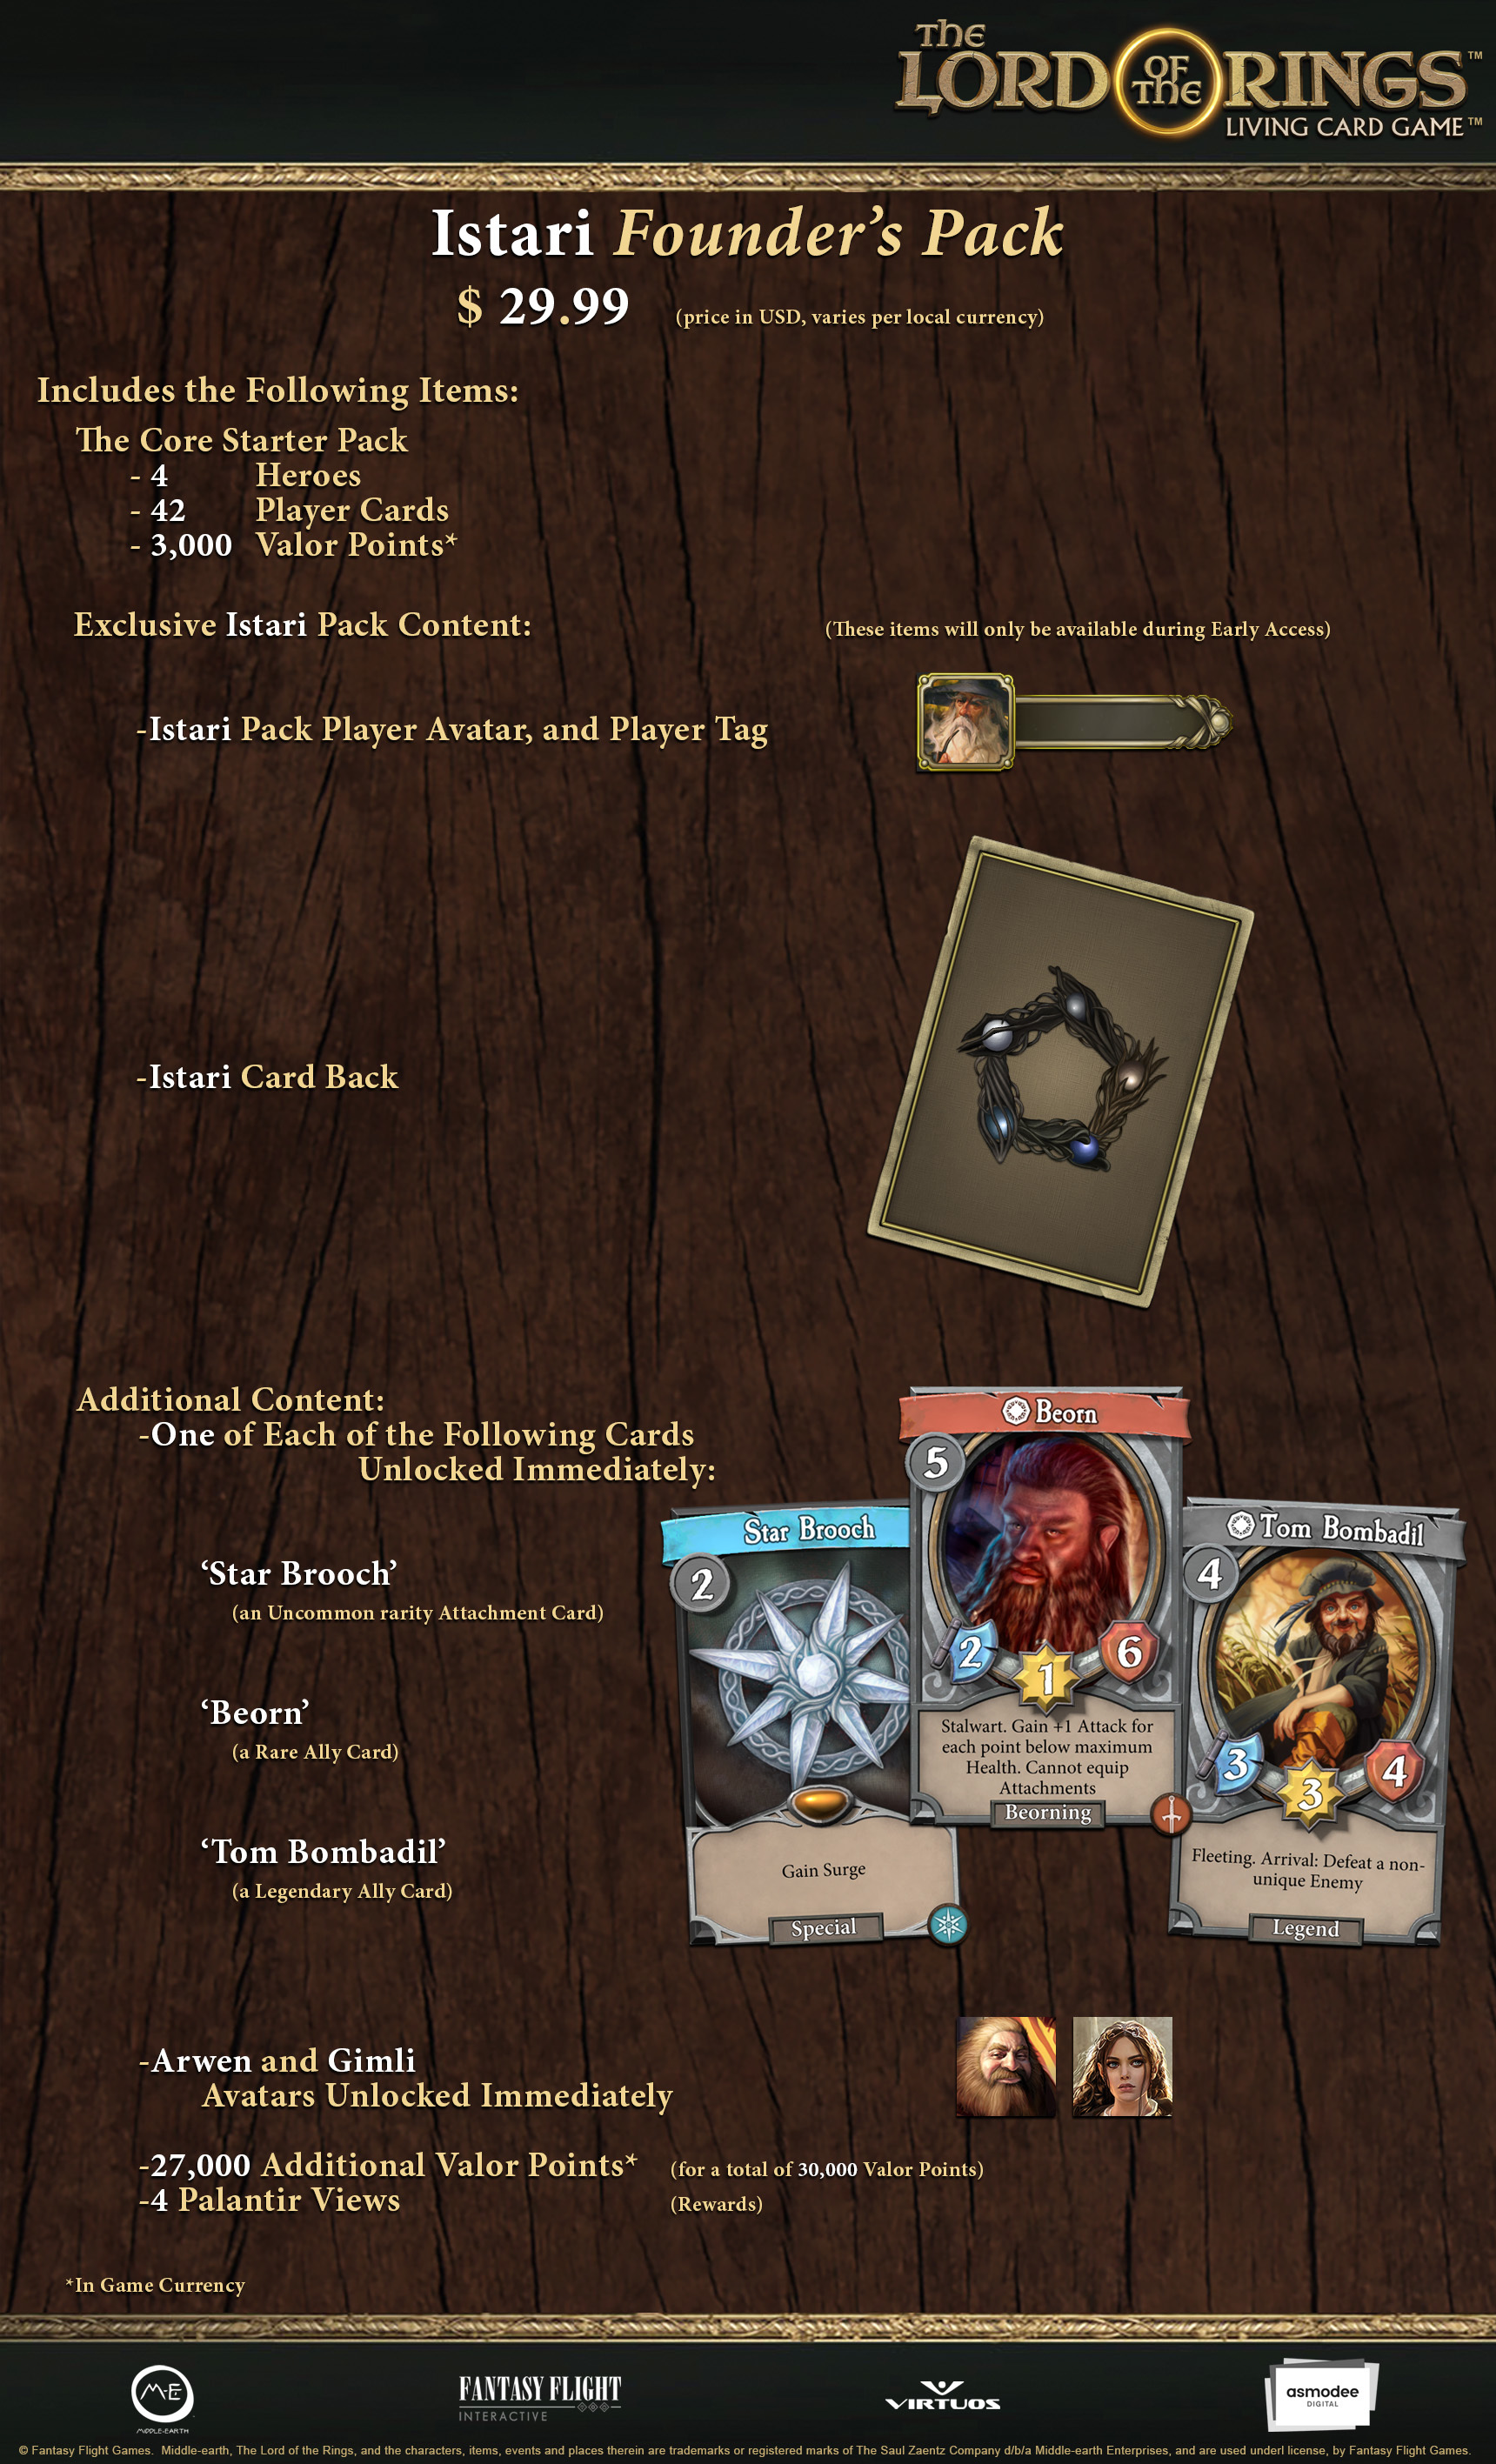 Lord of the Rings : Living Card Game Online - Page 5 30d3decb9b34d79c631416cfb7f2f022ae1ddf67